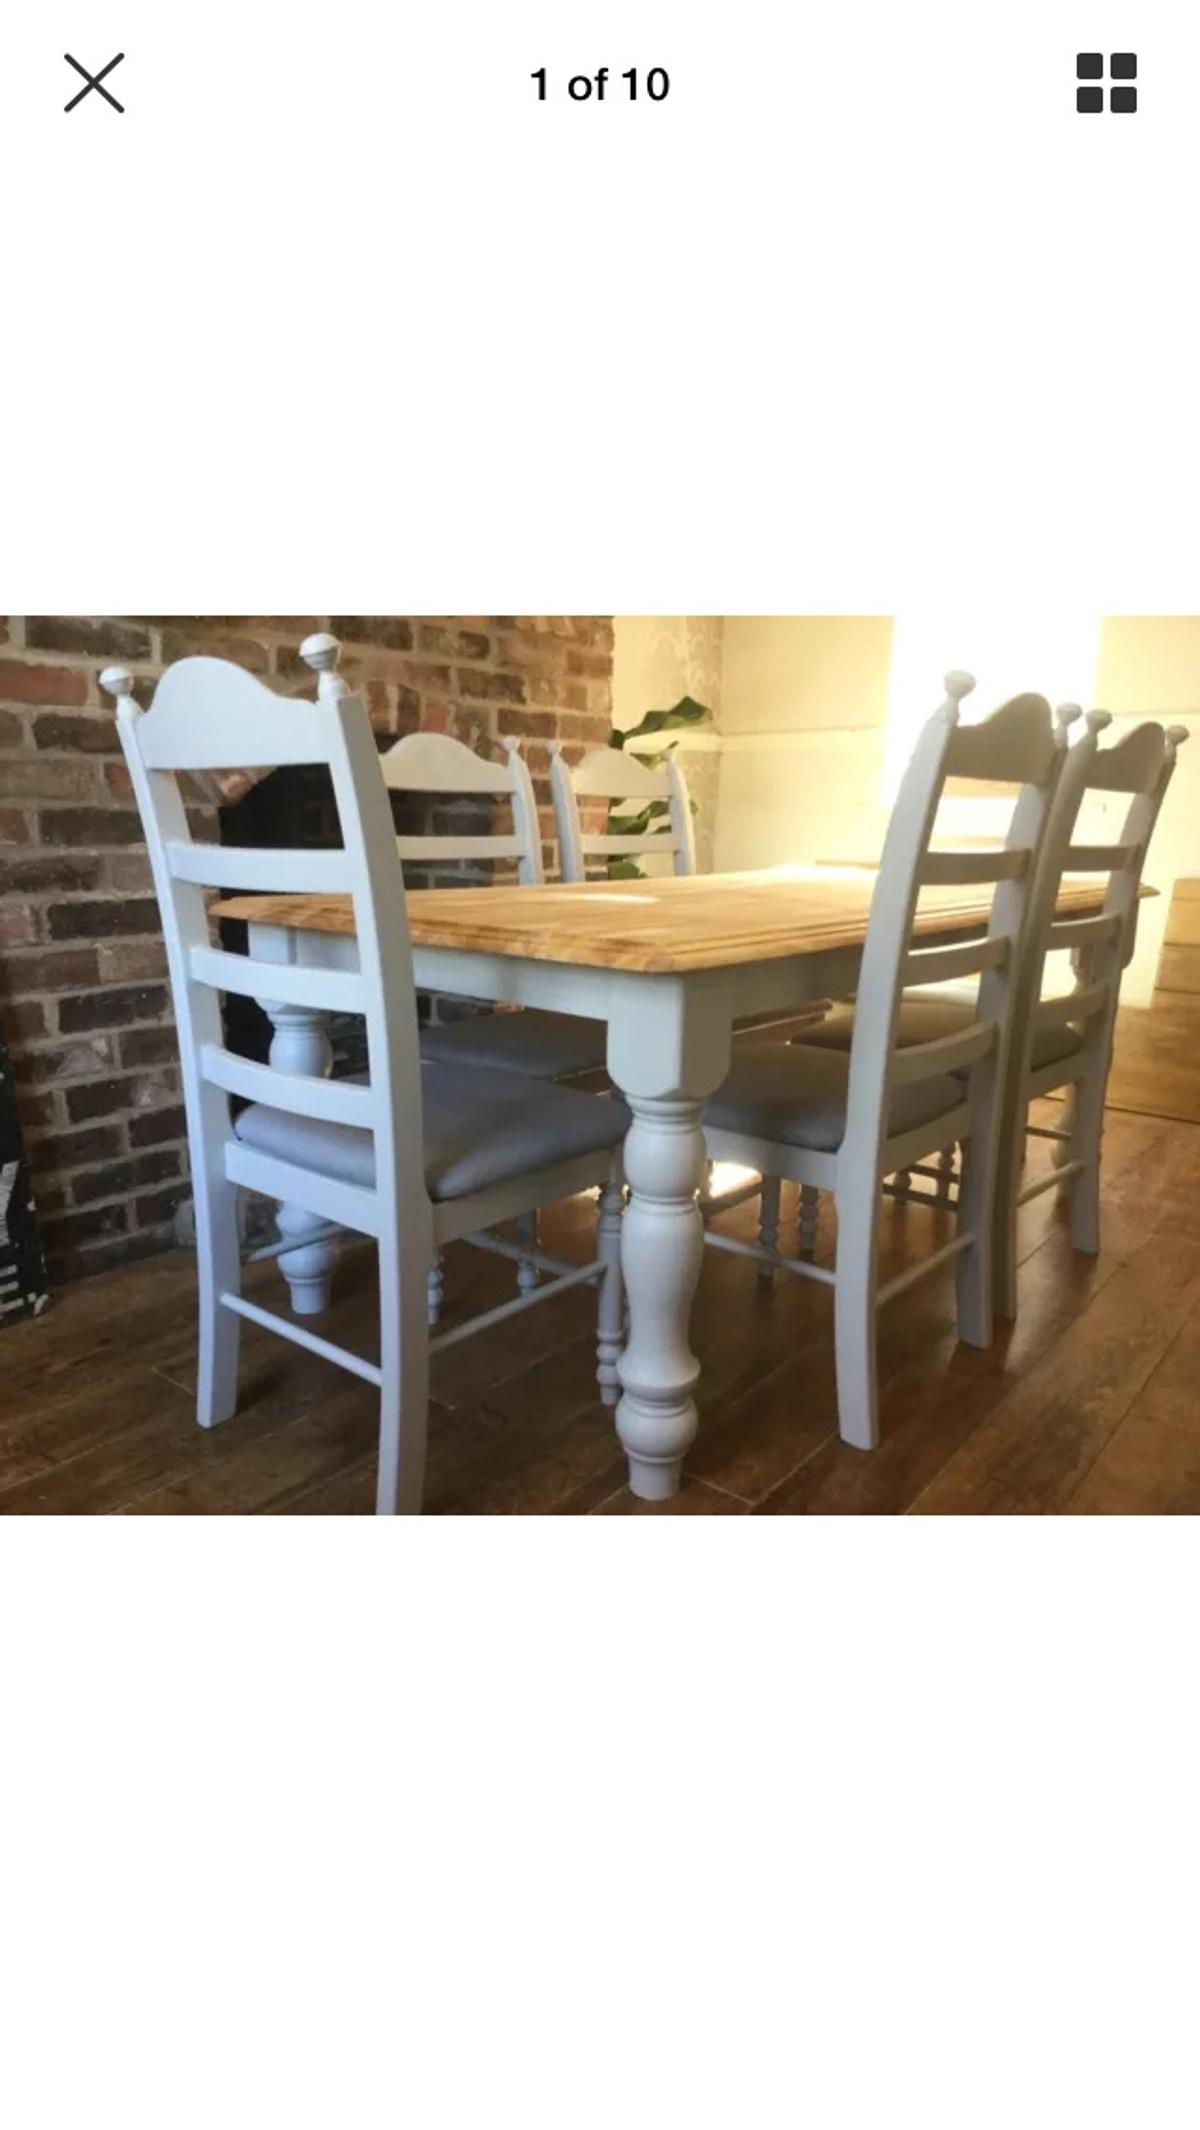 Oak table and 9 chairs painted F&B grey in Amber Valley für 9,9 ...